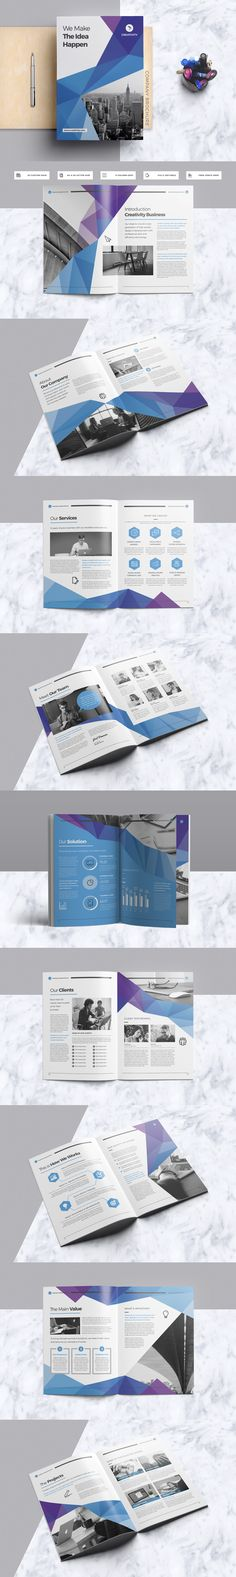 Creative & Clean Company Brochure 20 Pages Template InDesign INDD